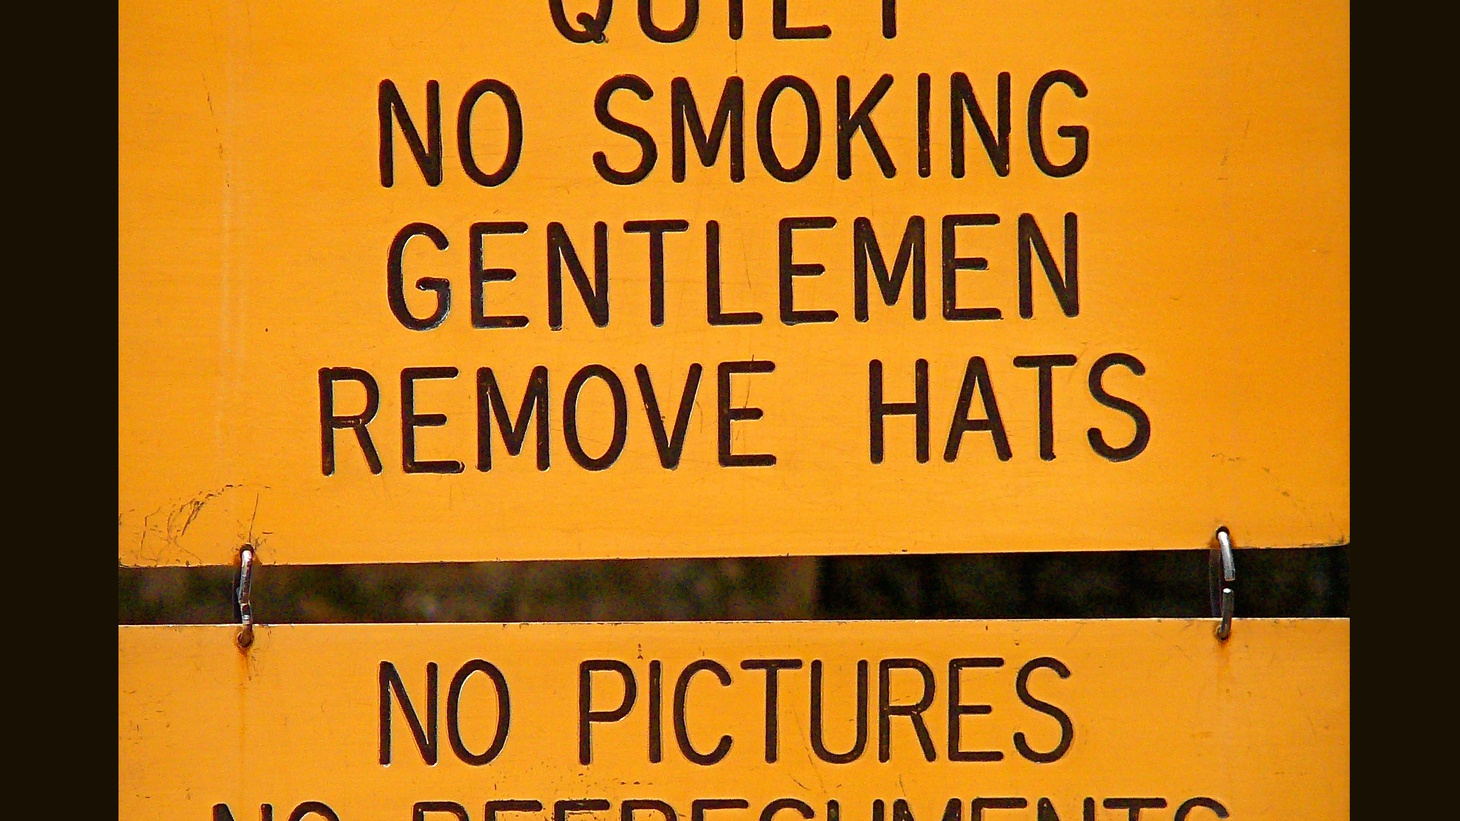 Perhaps there was a time when the rules of polite society were clear. No longer.